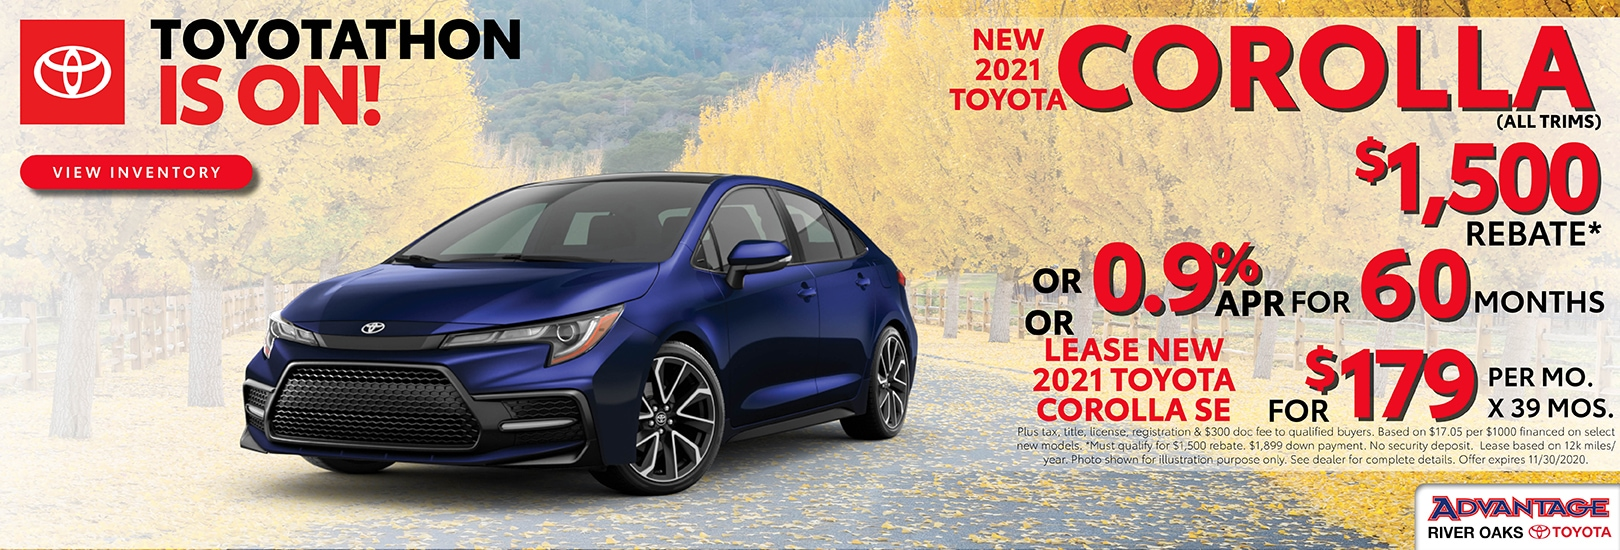 2021 Toyota Corolla Finance or Lease Offer | Calumet City, IL